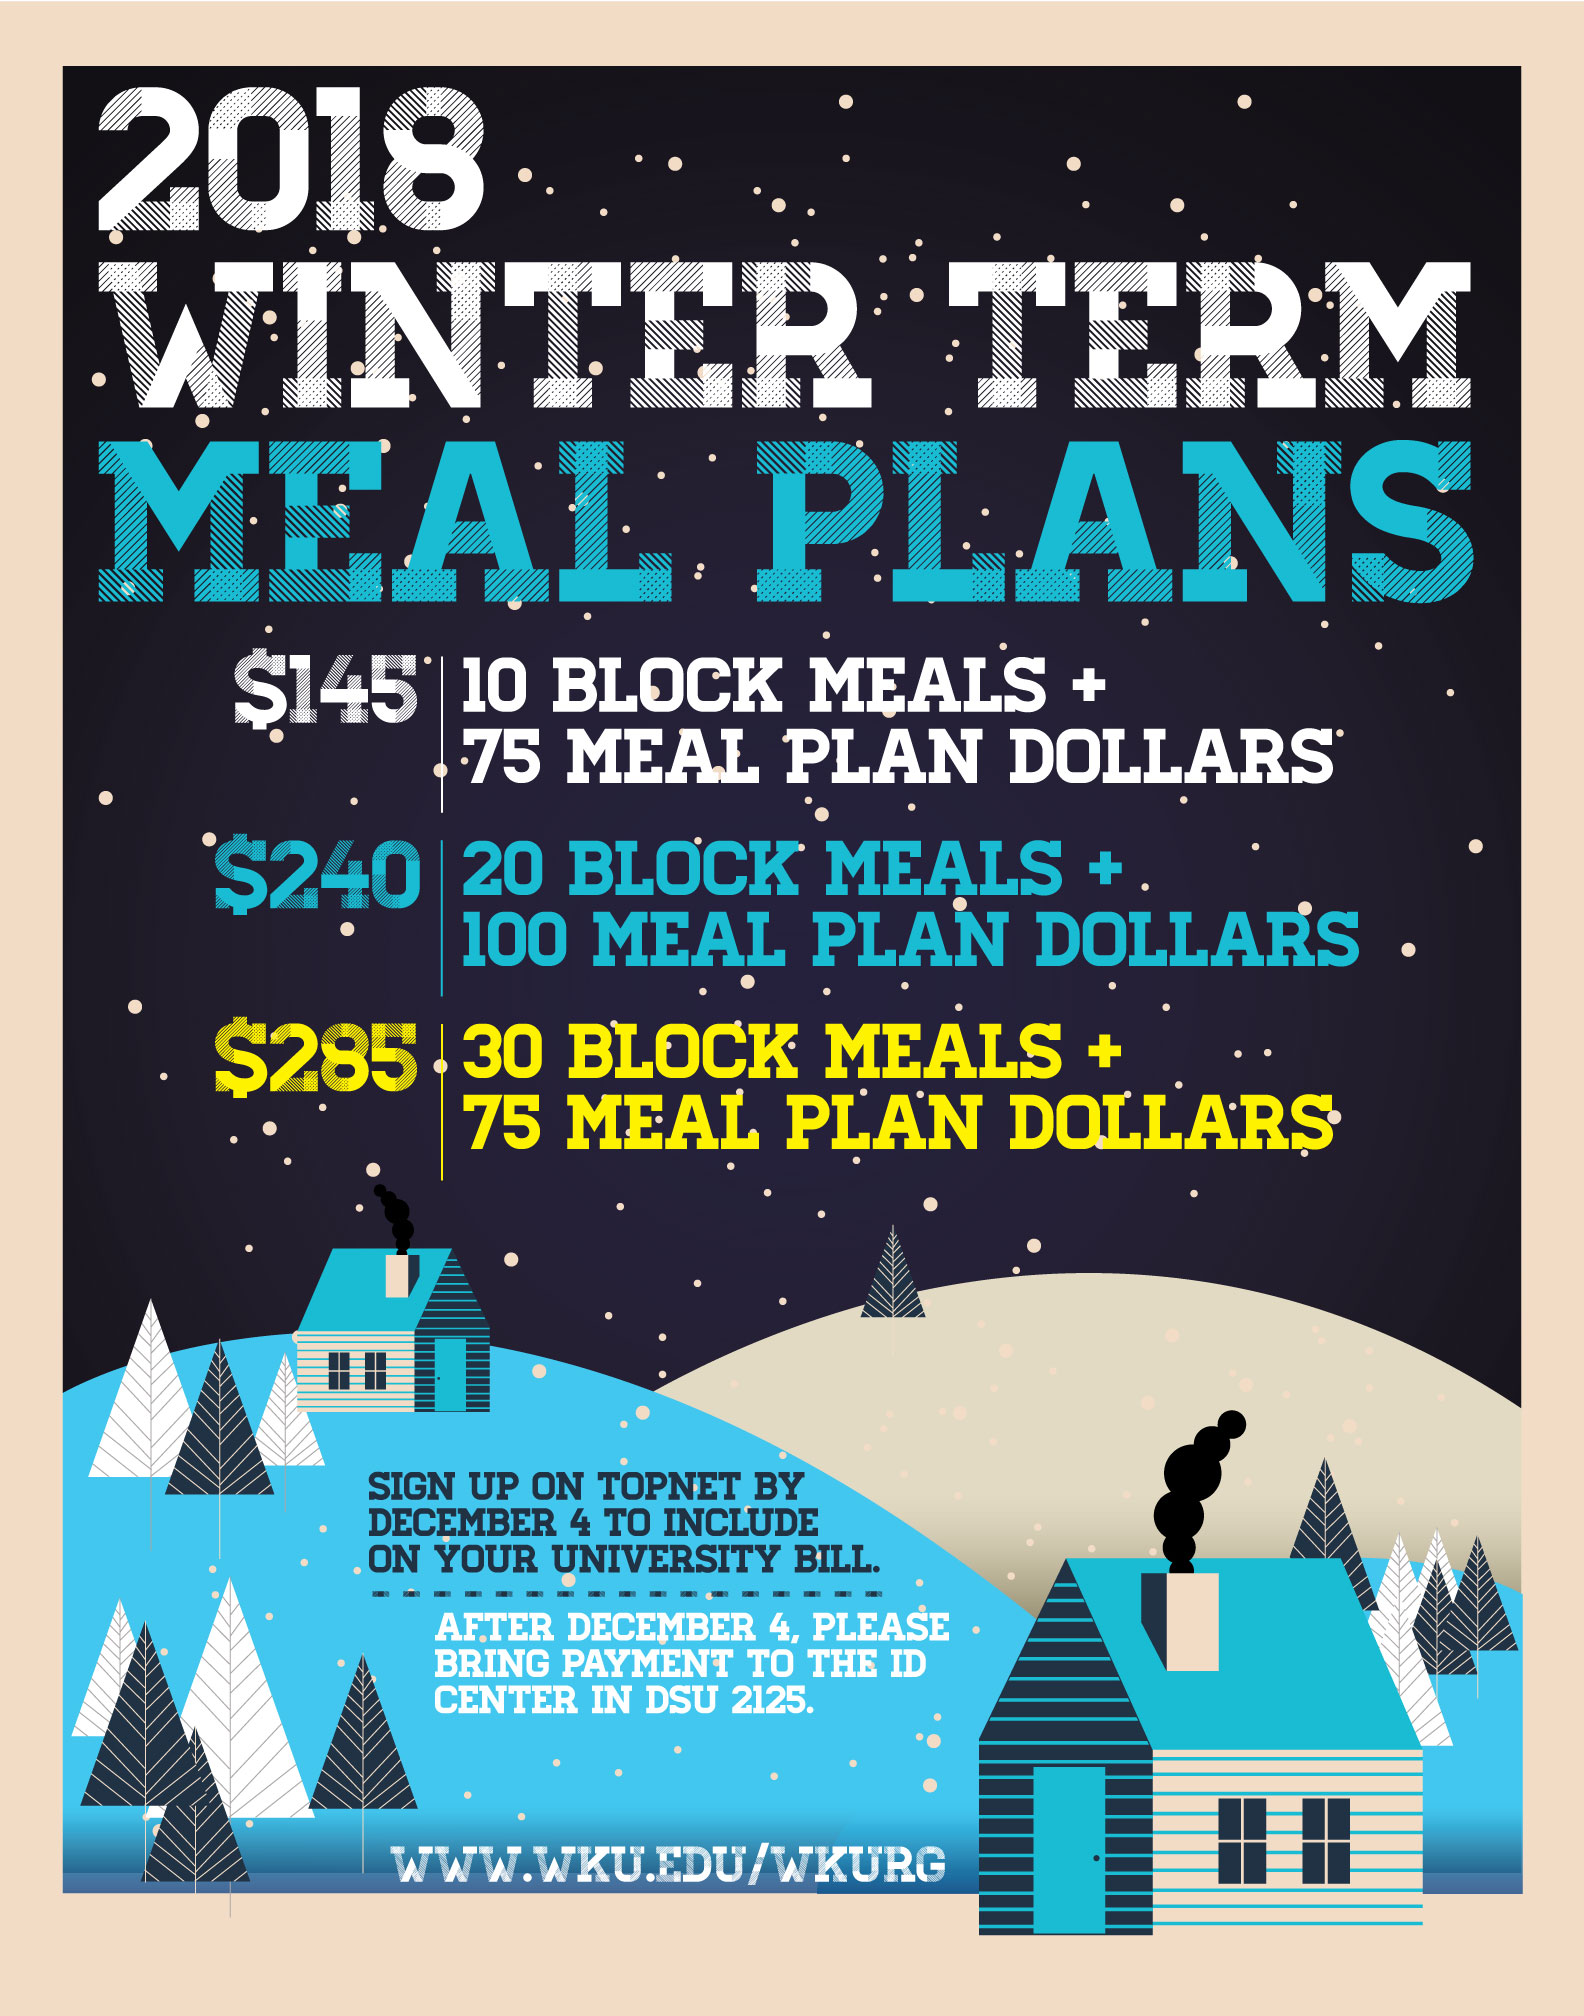 Winter Term Meal Plans